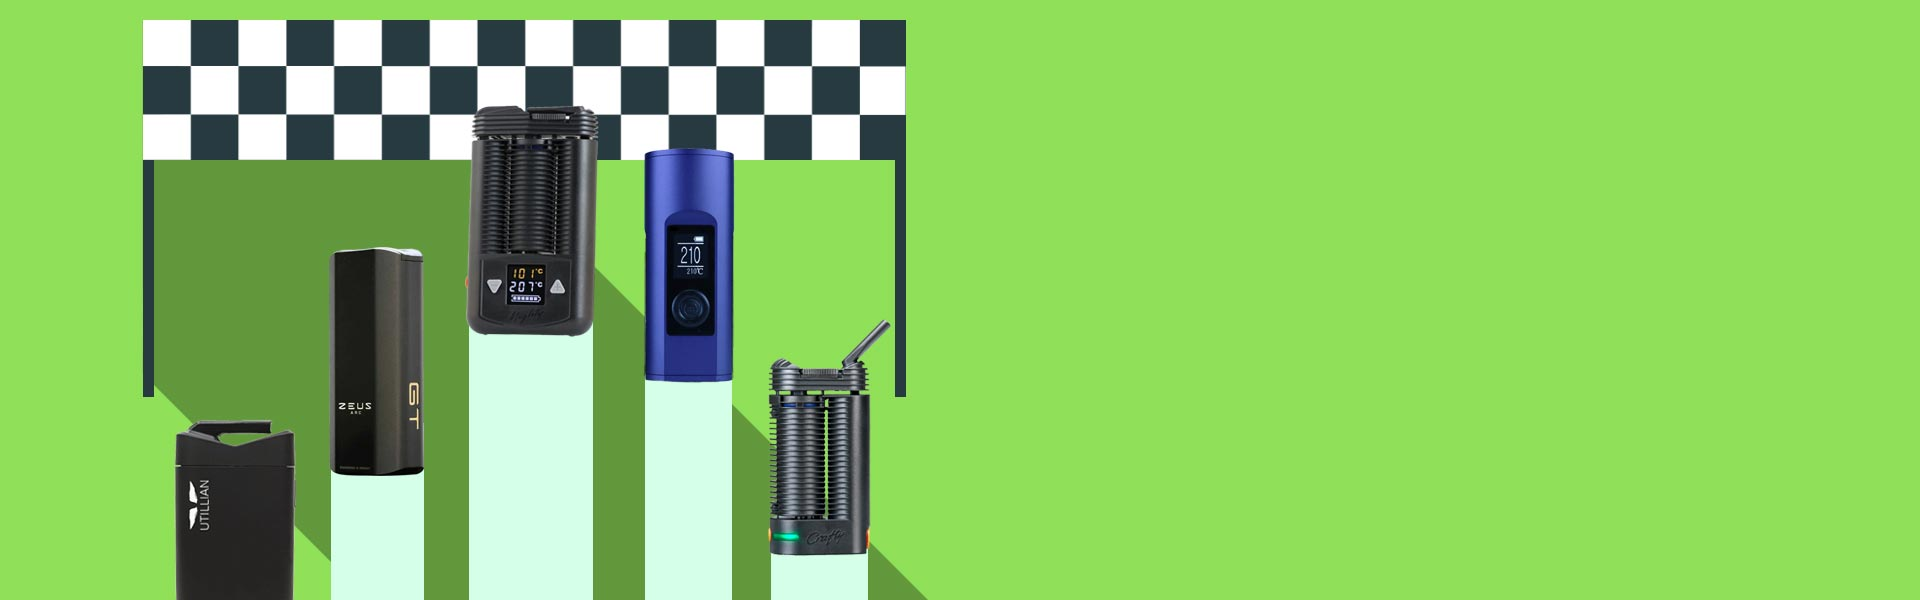 Best Portable Dry Herb Vaporizers of 2020